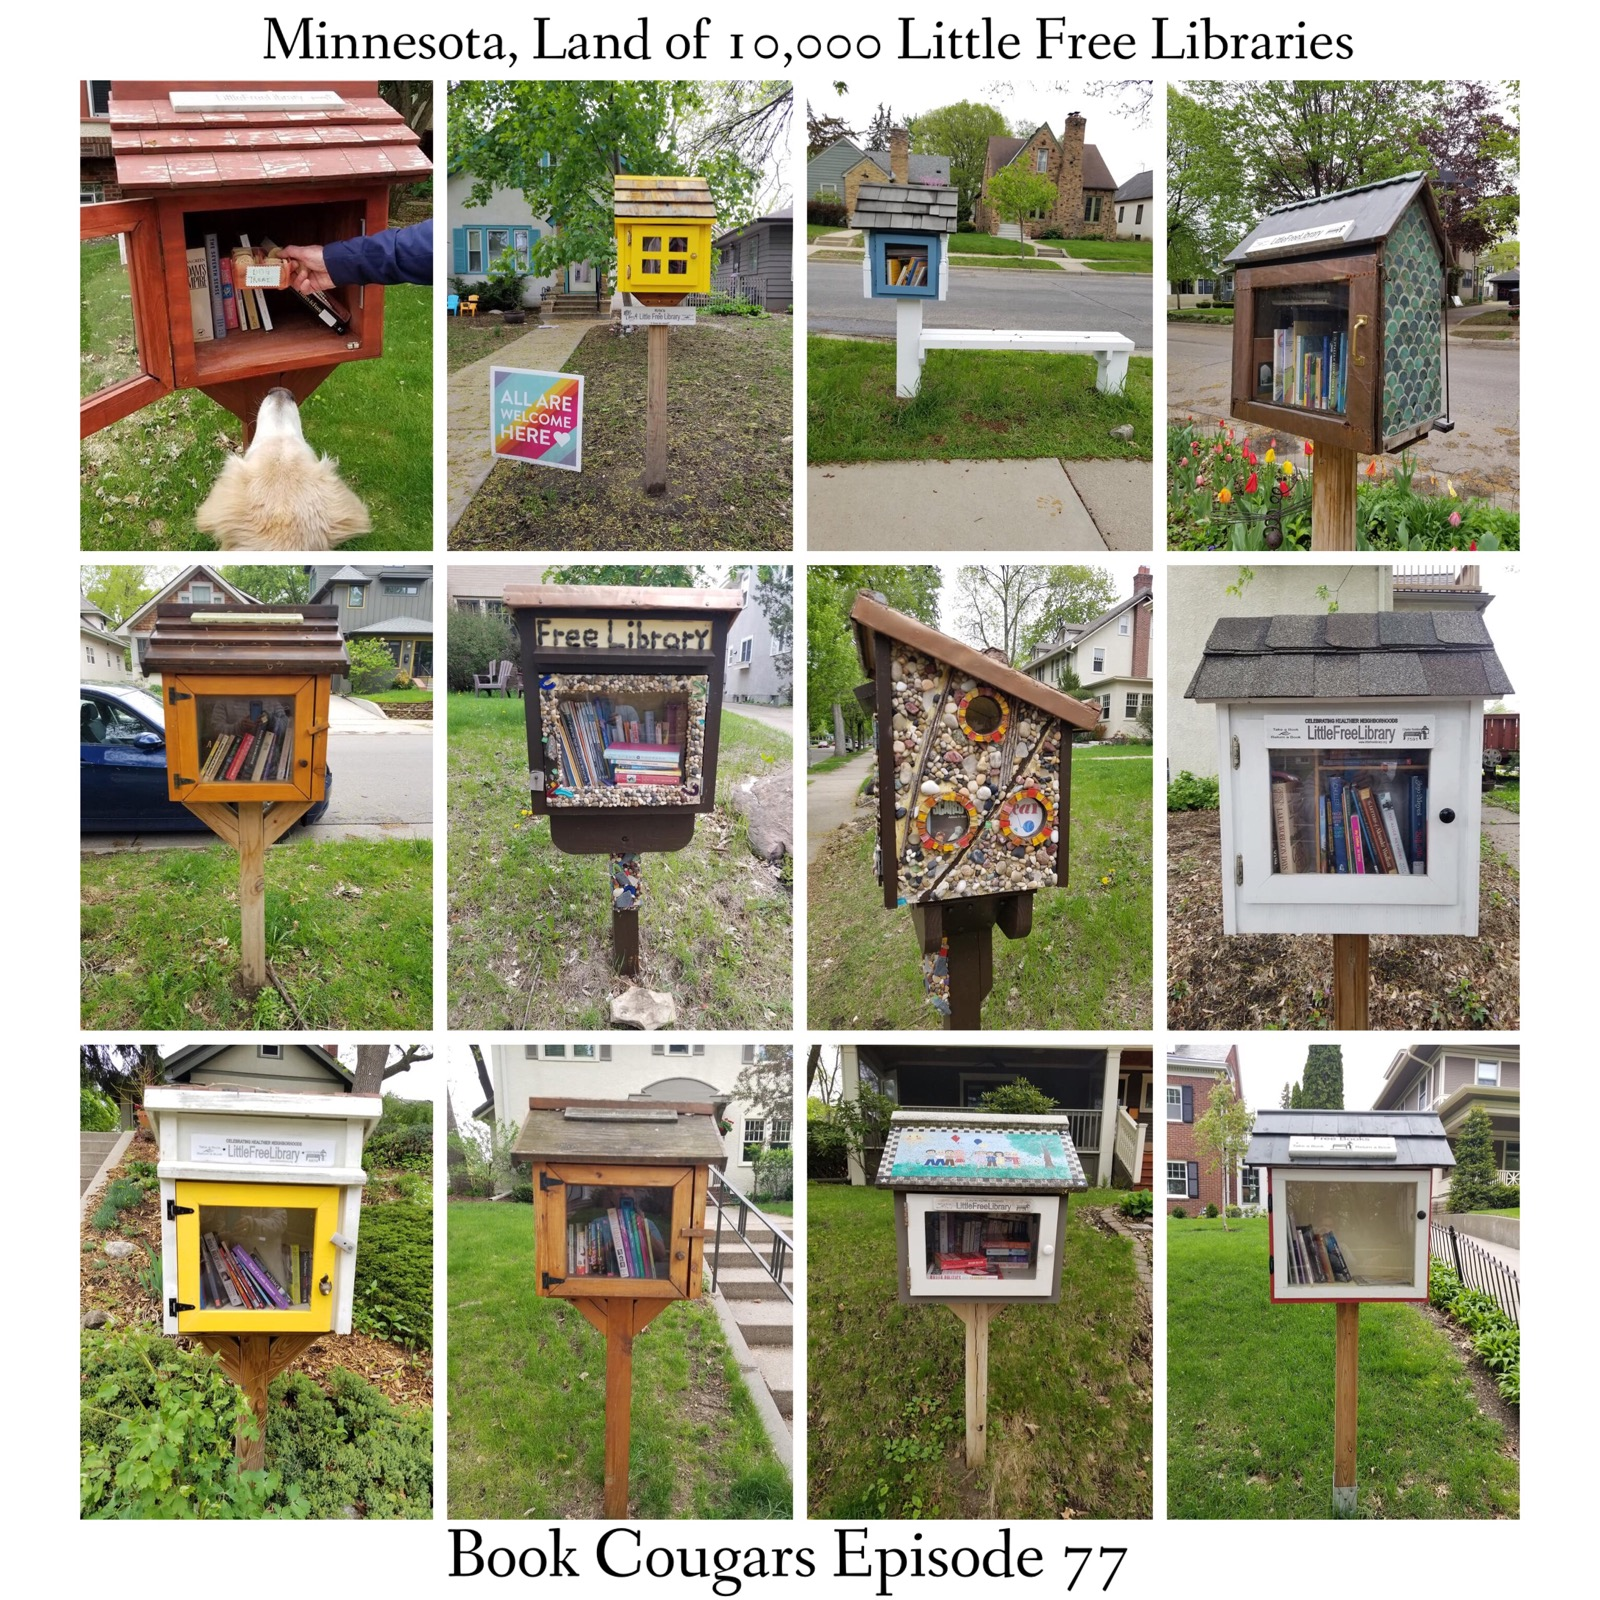 A sampling of the Little Free Libraries (LFL) that Emily spied on her trip to Minnesota. For map of LFL's, click  here .